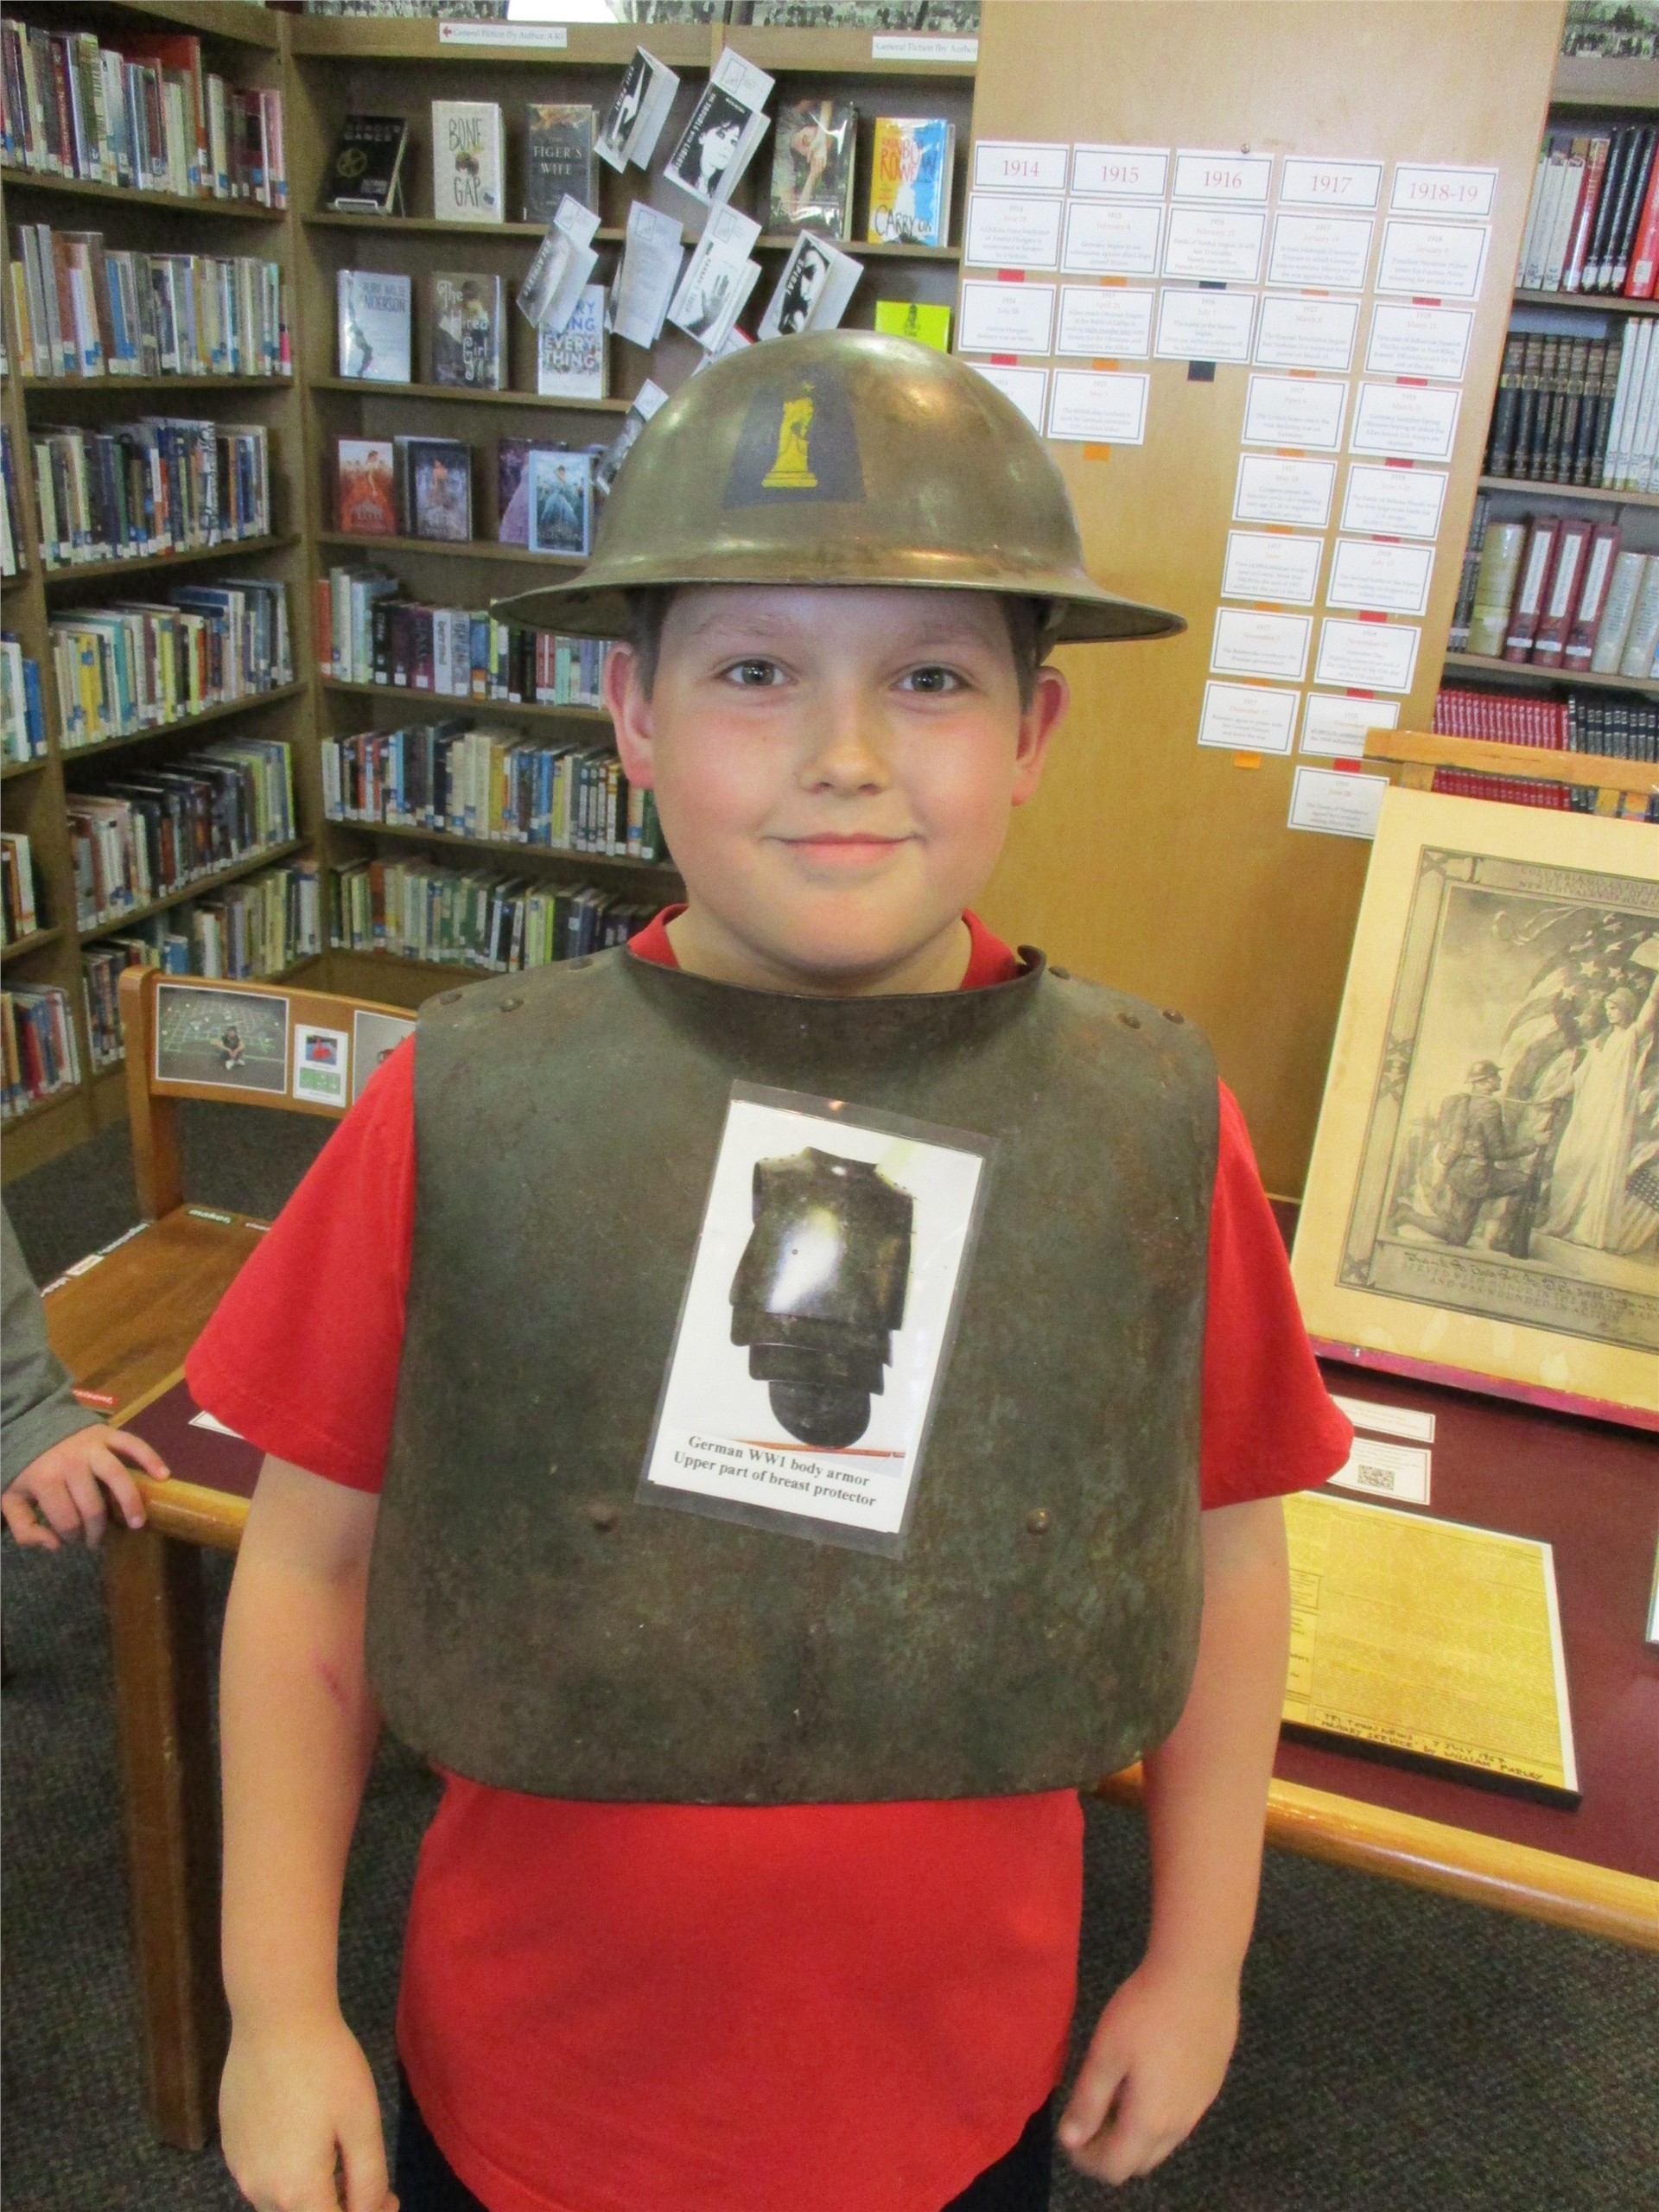 World War I exhibit: visitor wearing artillery armor and helmet.